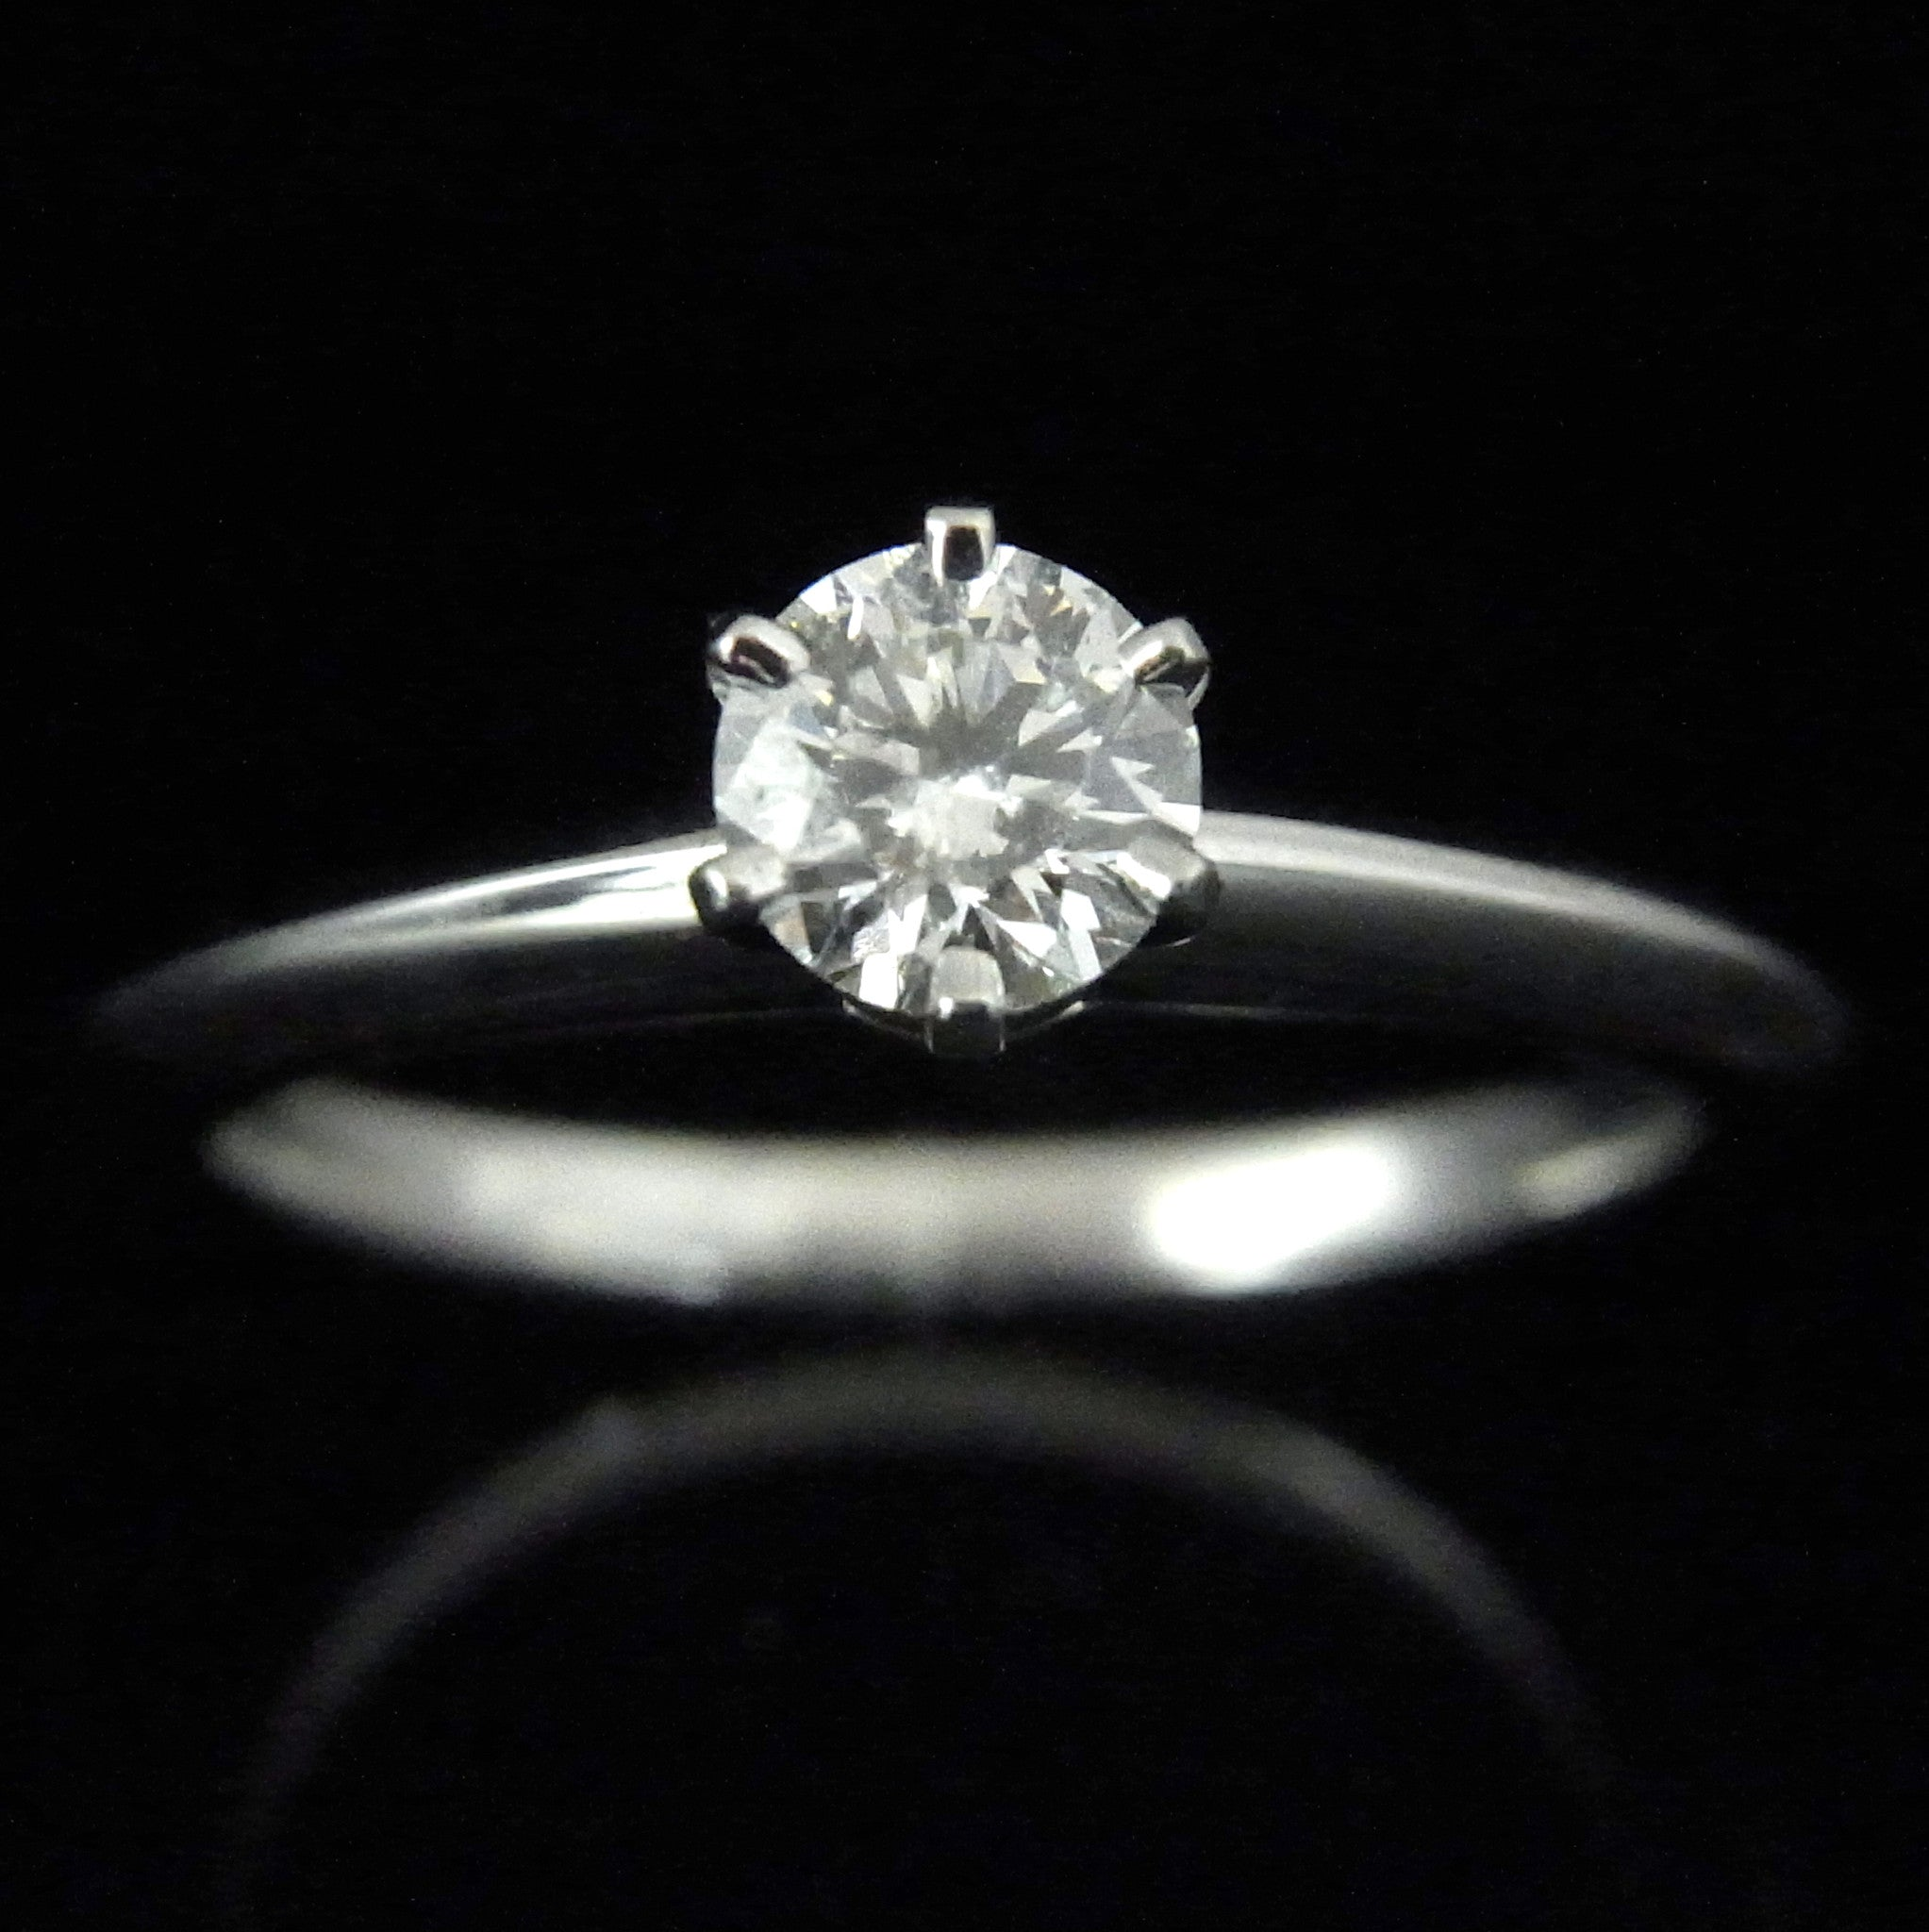 uk of diamond the engagement brides news buccellatti tiffany bazaar rings best